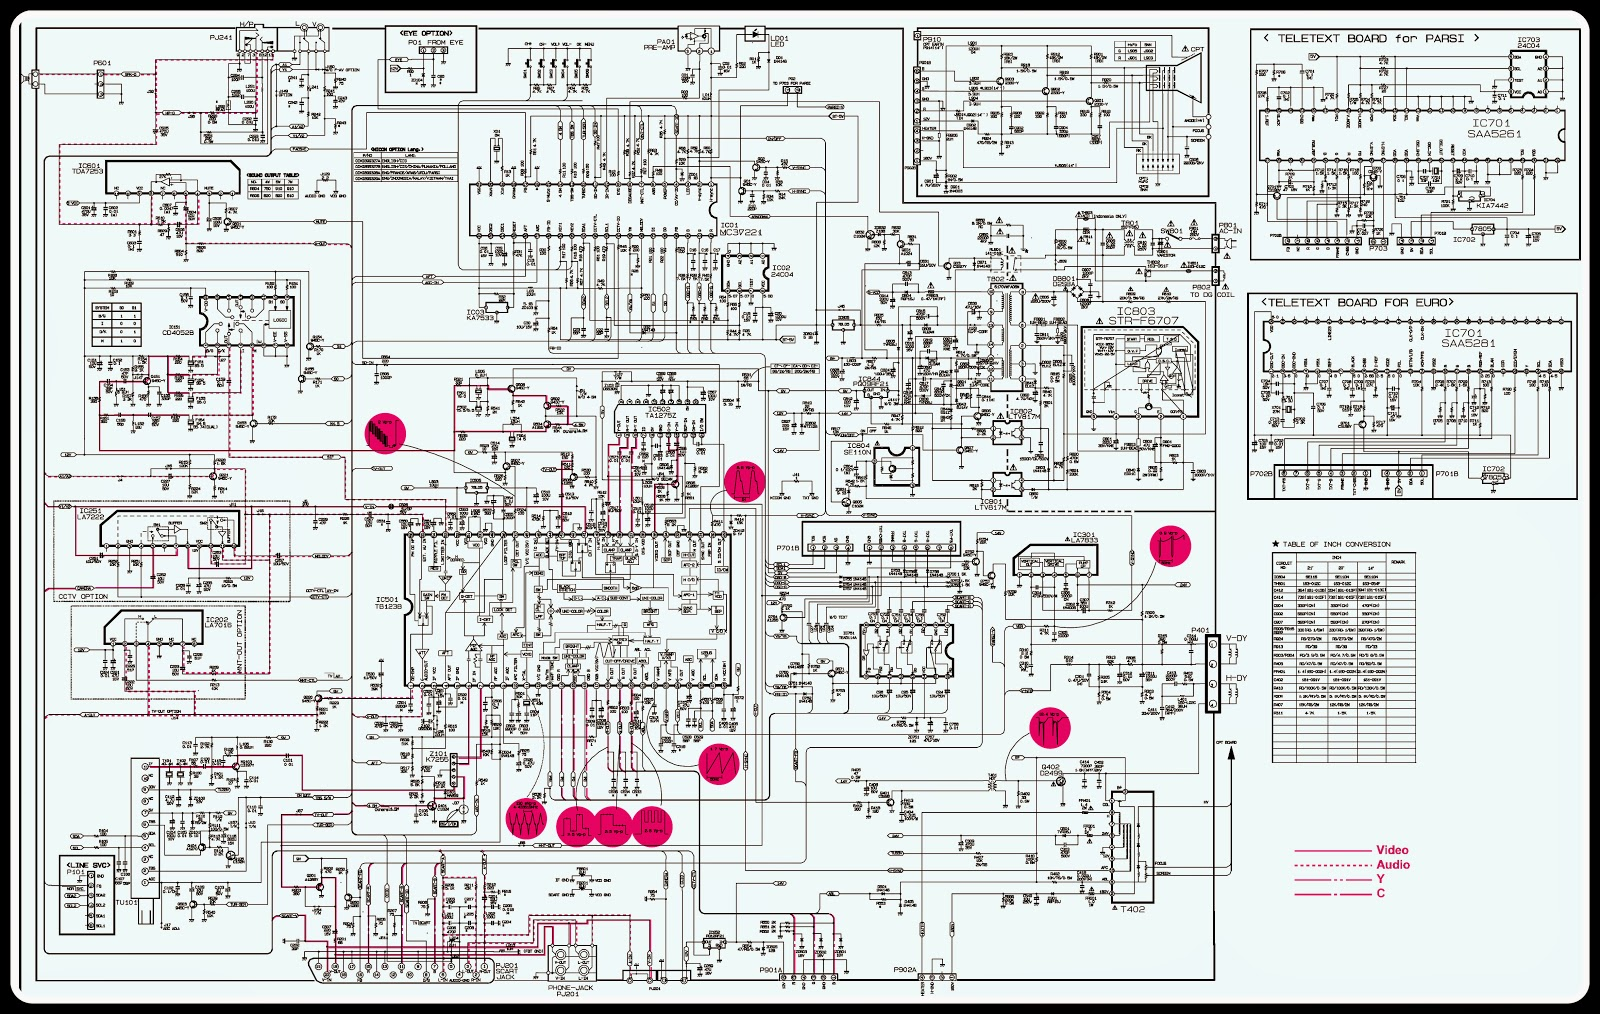 Lg TV Circuit Diagram | Learn Basic Electronics,Circuit Diagram ...